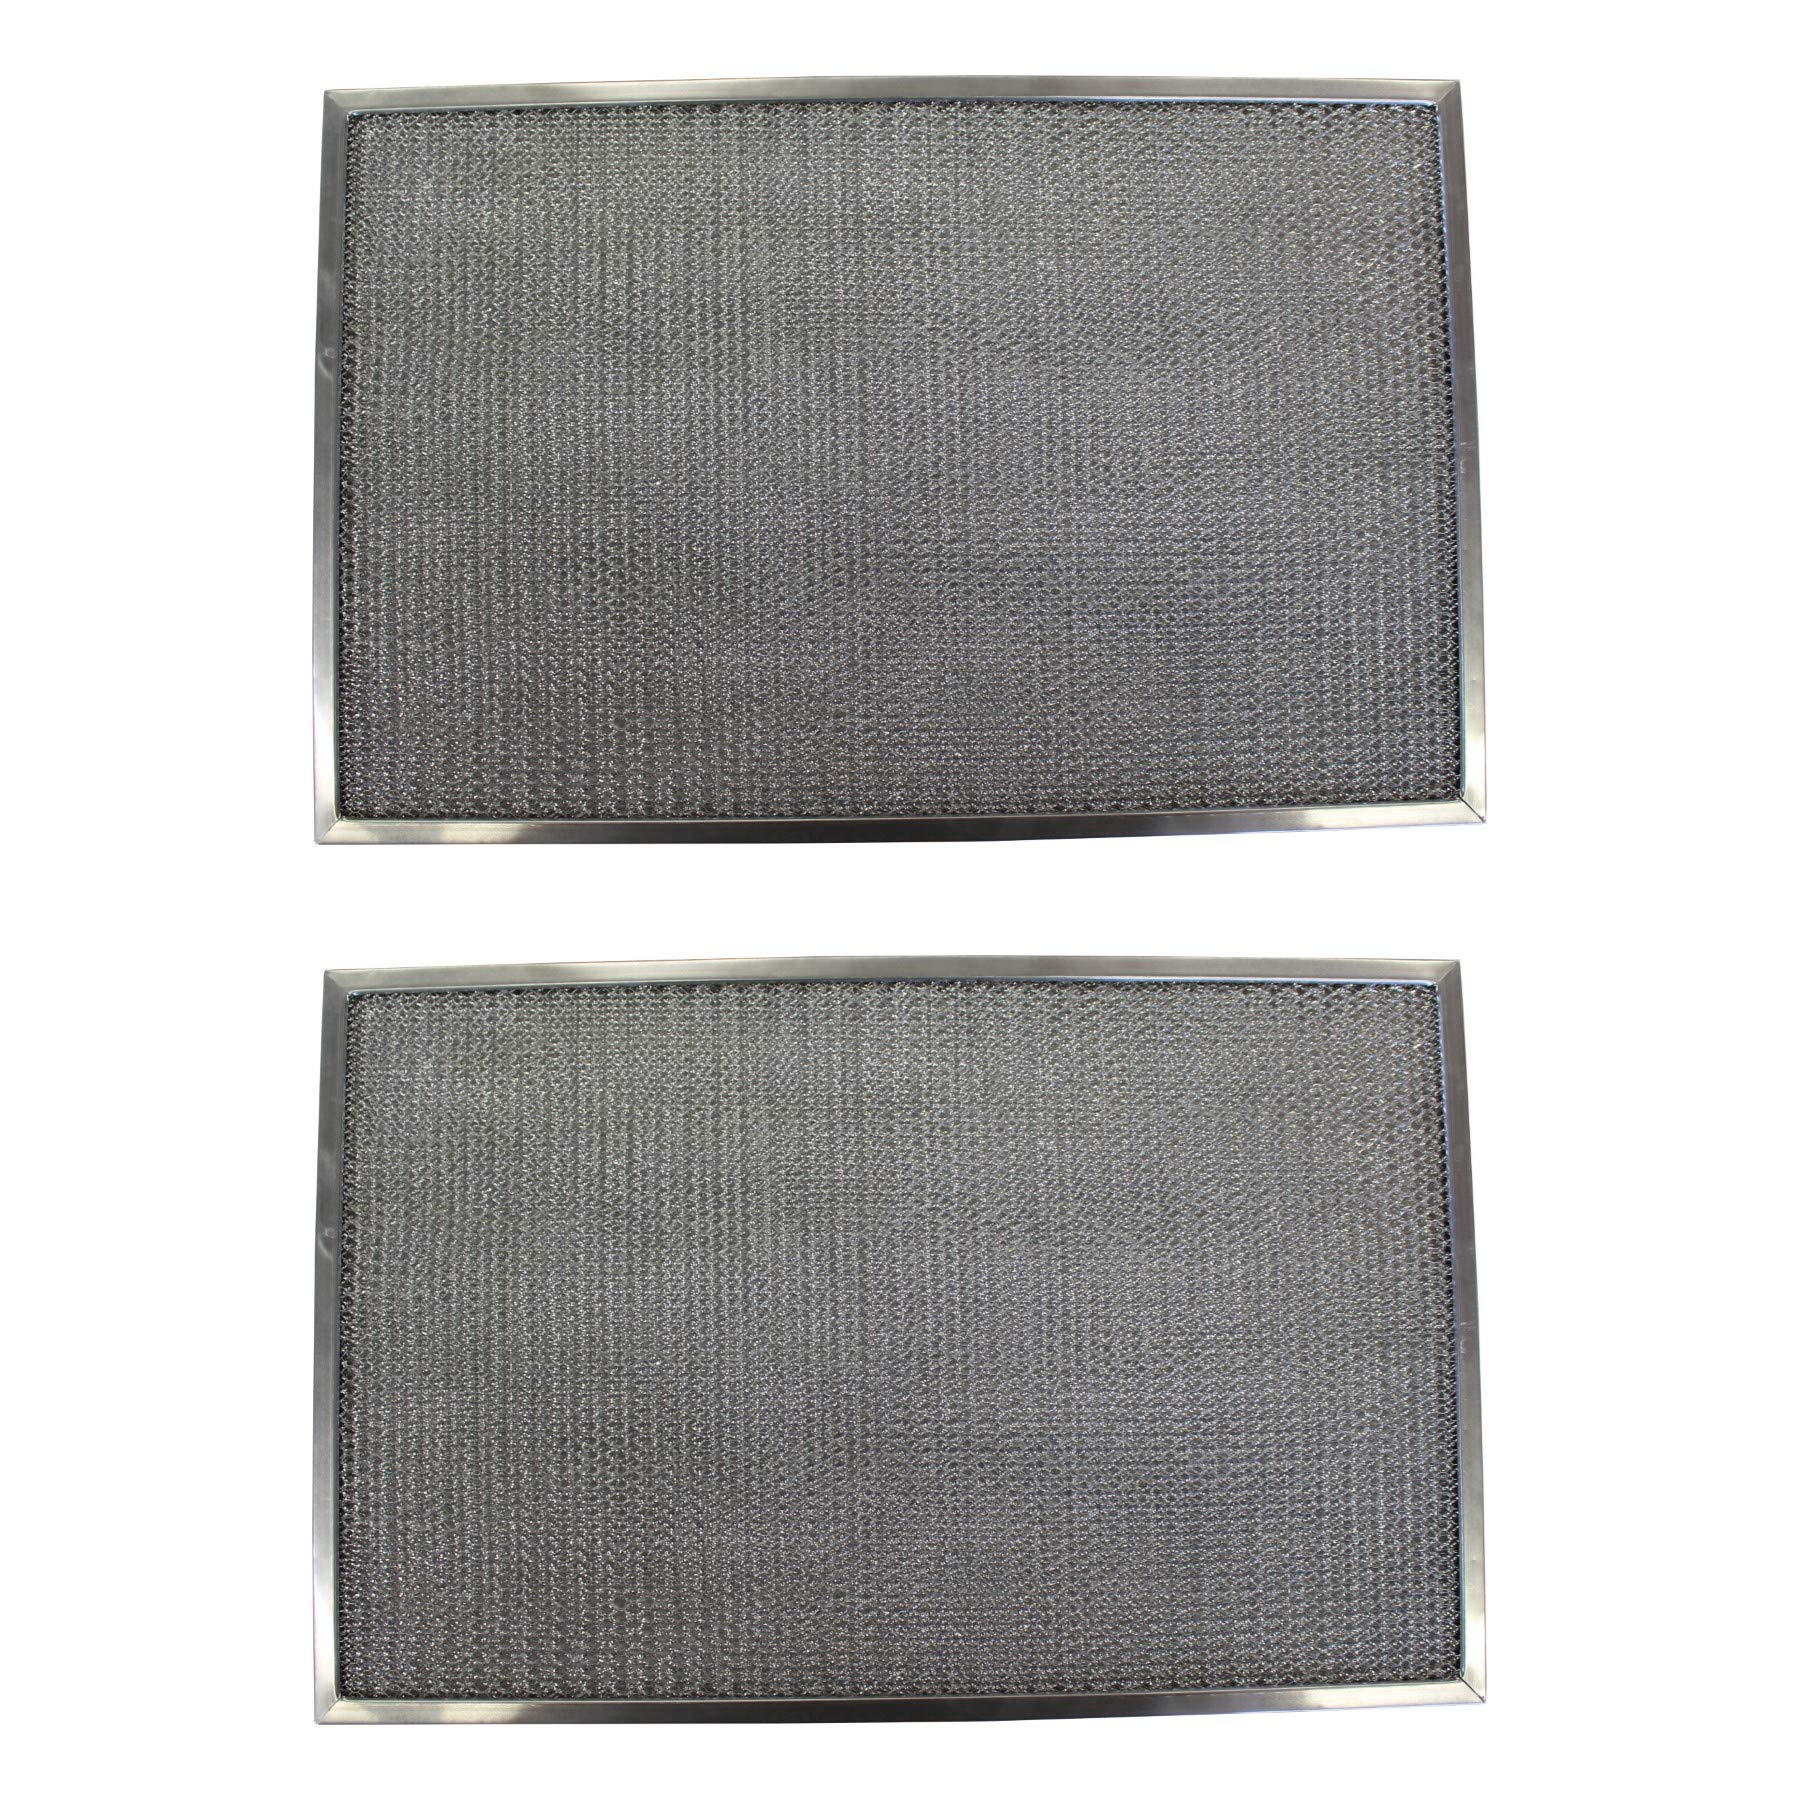 Replacement Aluminum Filters Compatible with Nutone 16212 000,G 8526,RHF0401  9 1/2 x 17 3/4 x 3/8 (